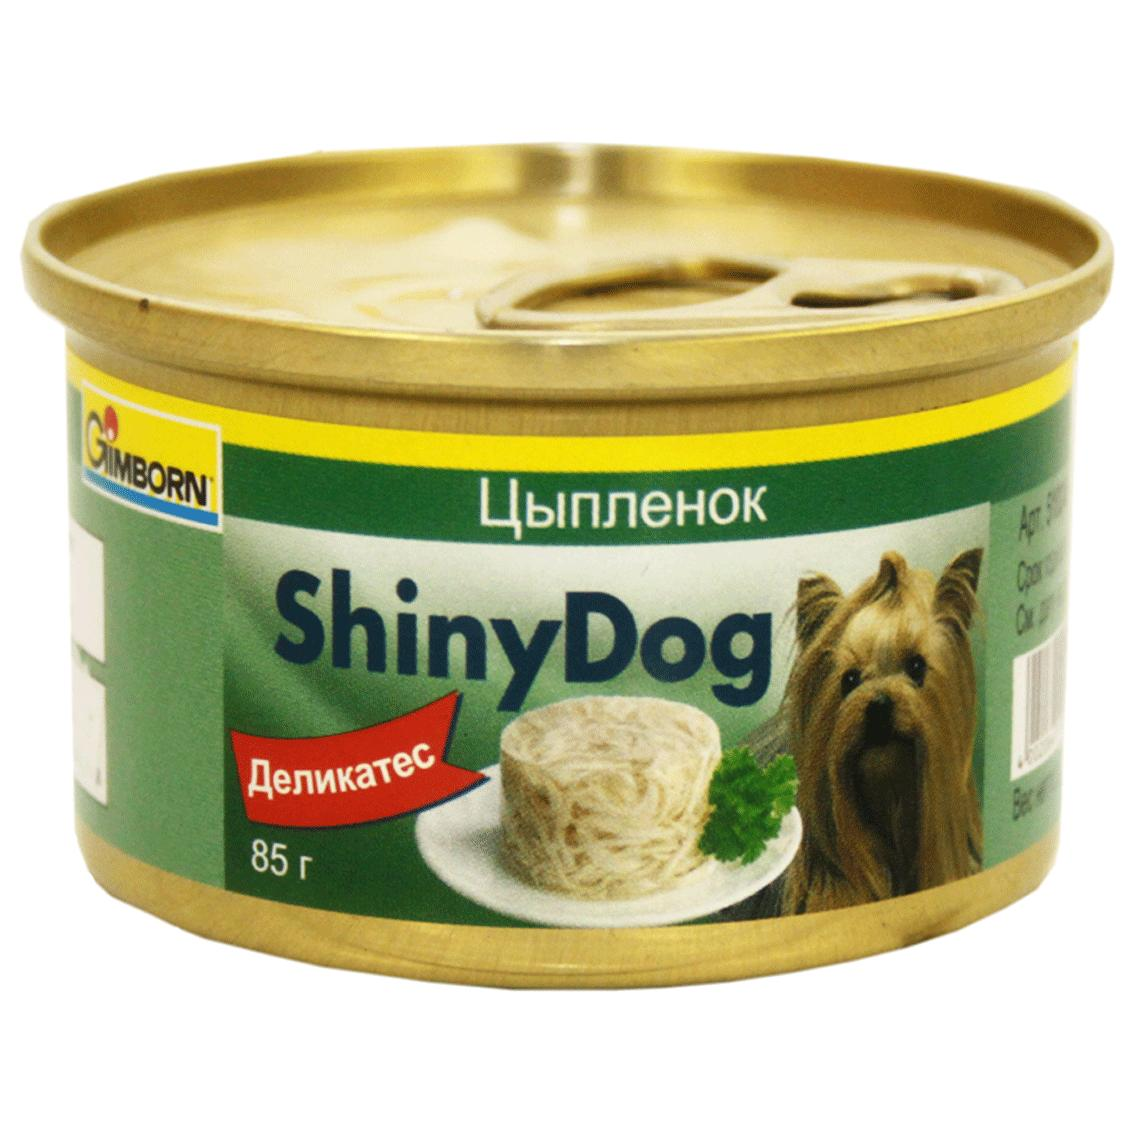 Gimborn Shiny Dog цыпленок 85г